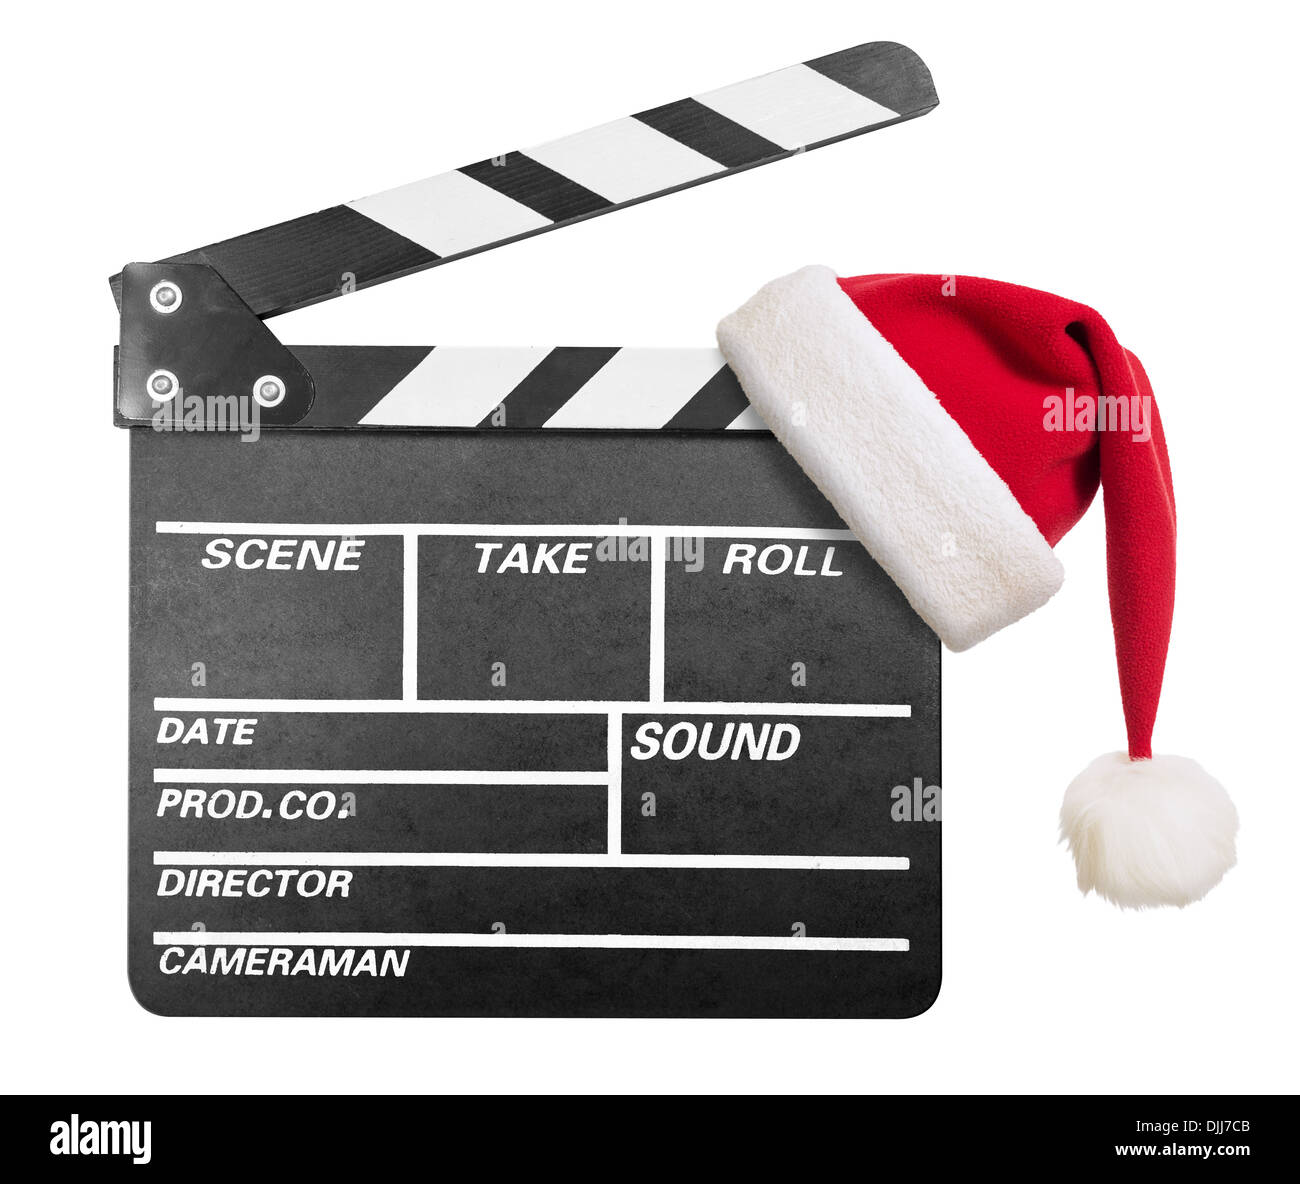 Clapper board with Santa's hat isolate - Stock Image